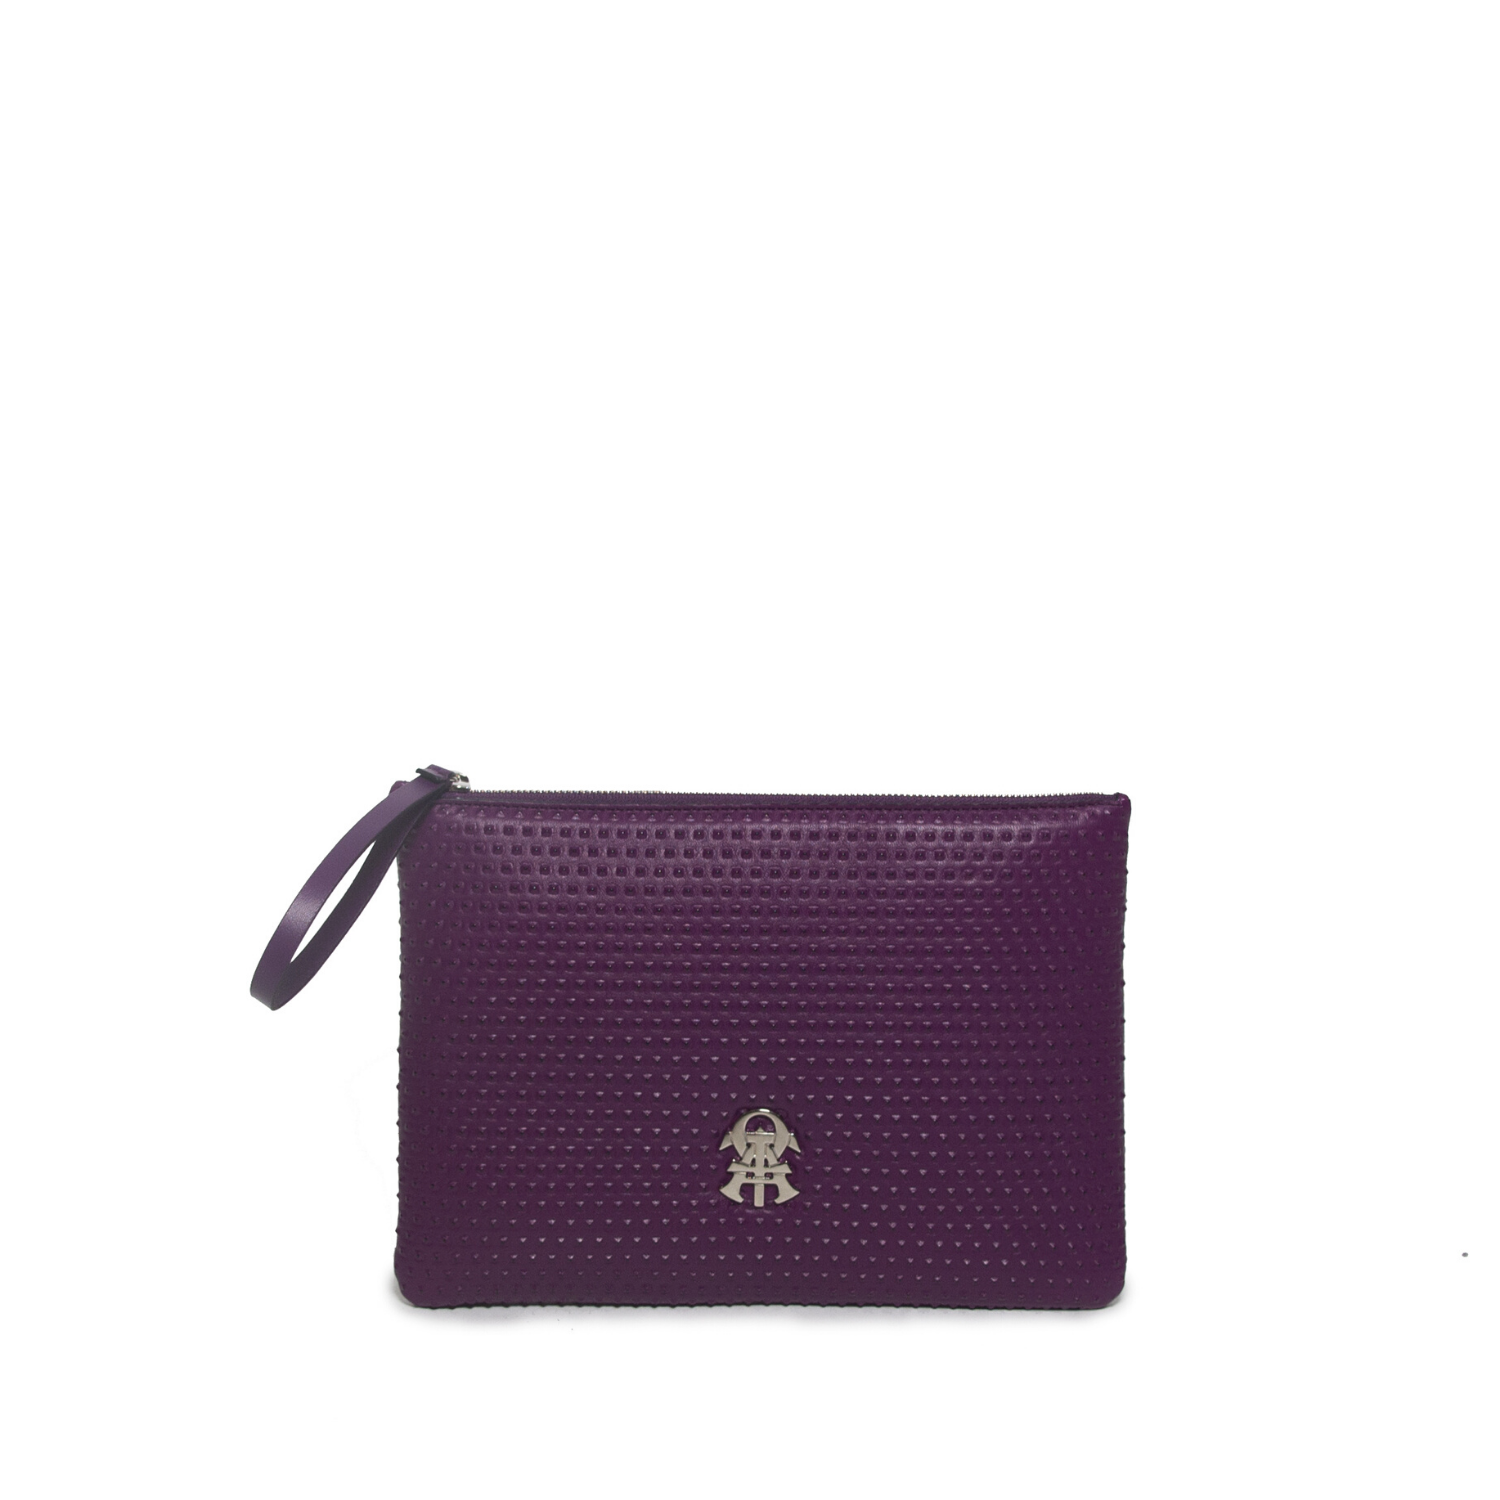 POCHETTE - Pyramid Aubergine Pochette For Men